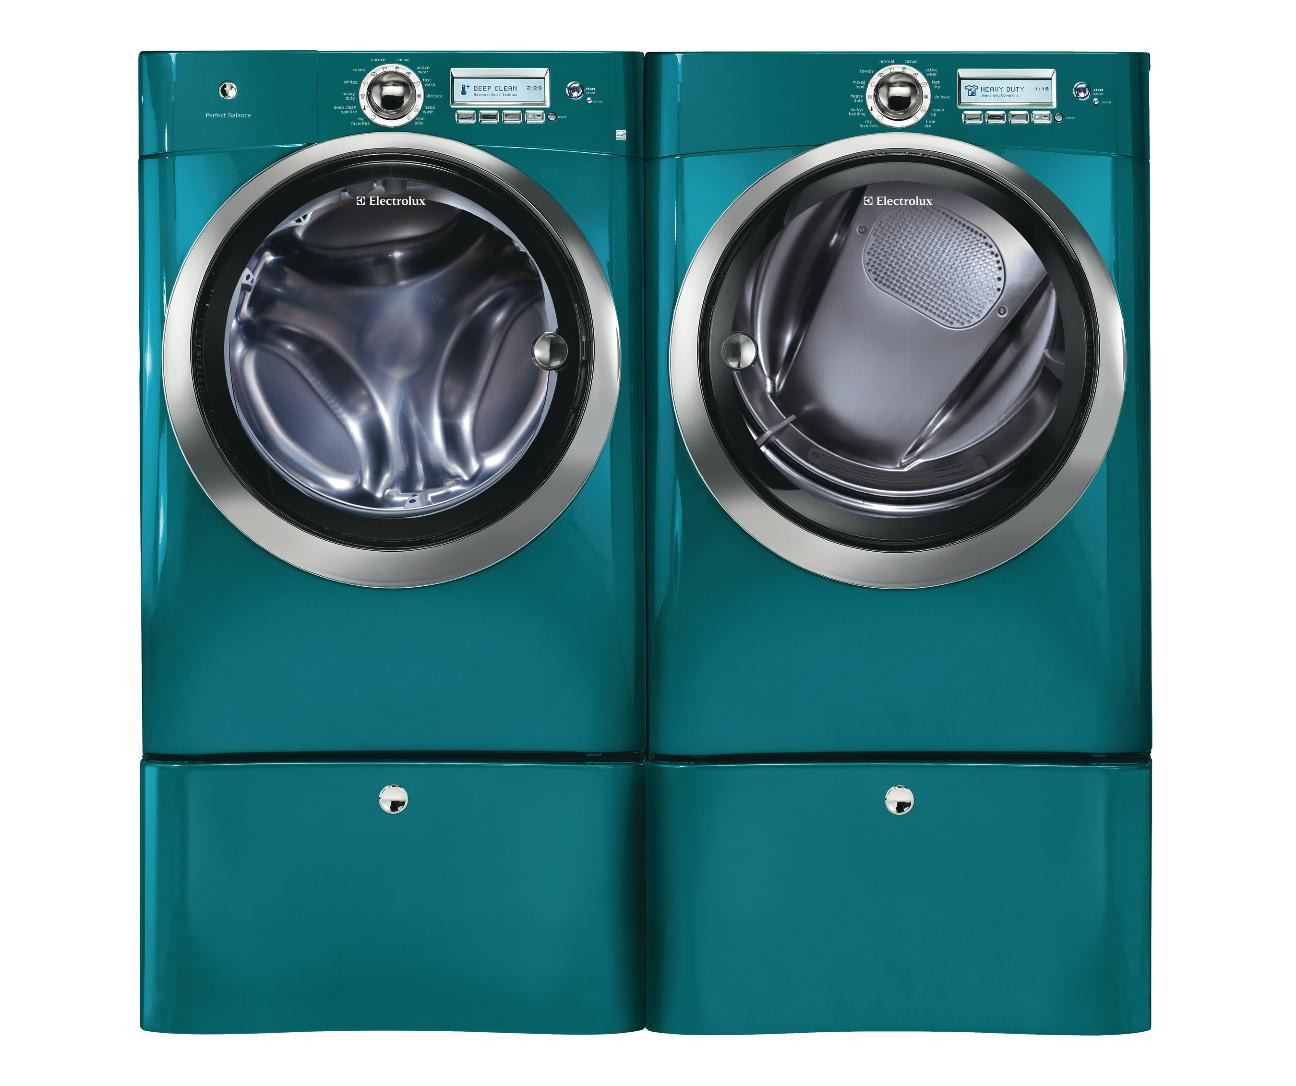 energy saving large capacity washer from electrolux ecobuilding pulse magazine green. Black Bedroom Furniture Sets. Home Design Ideas